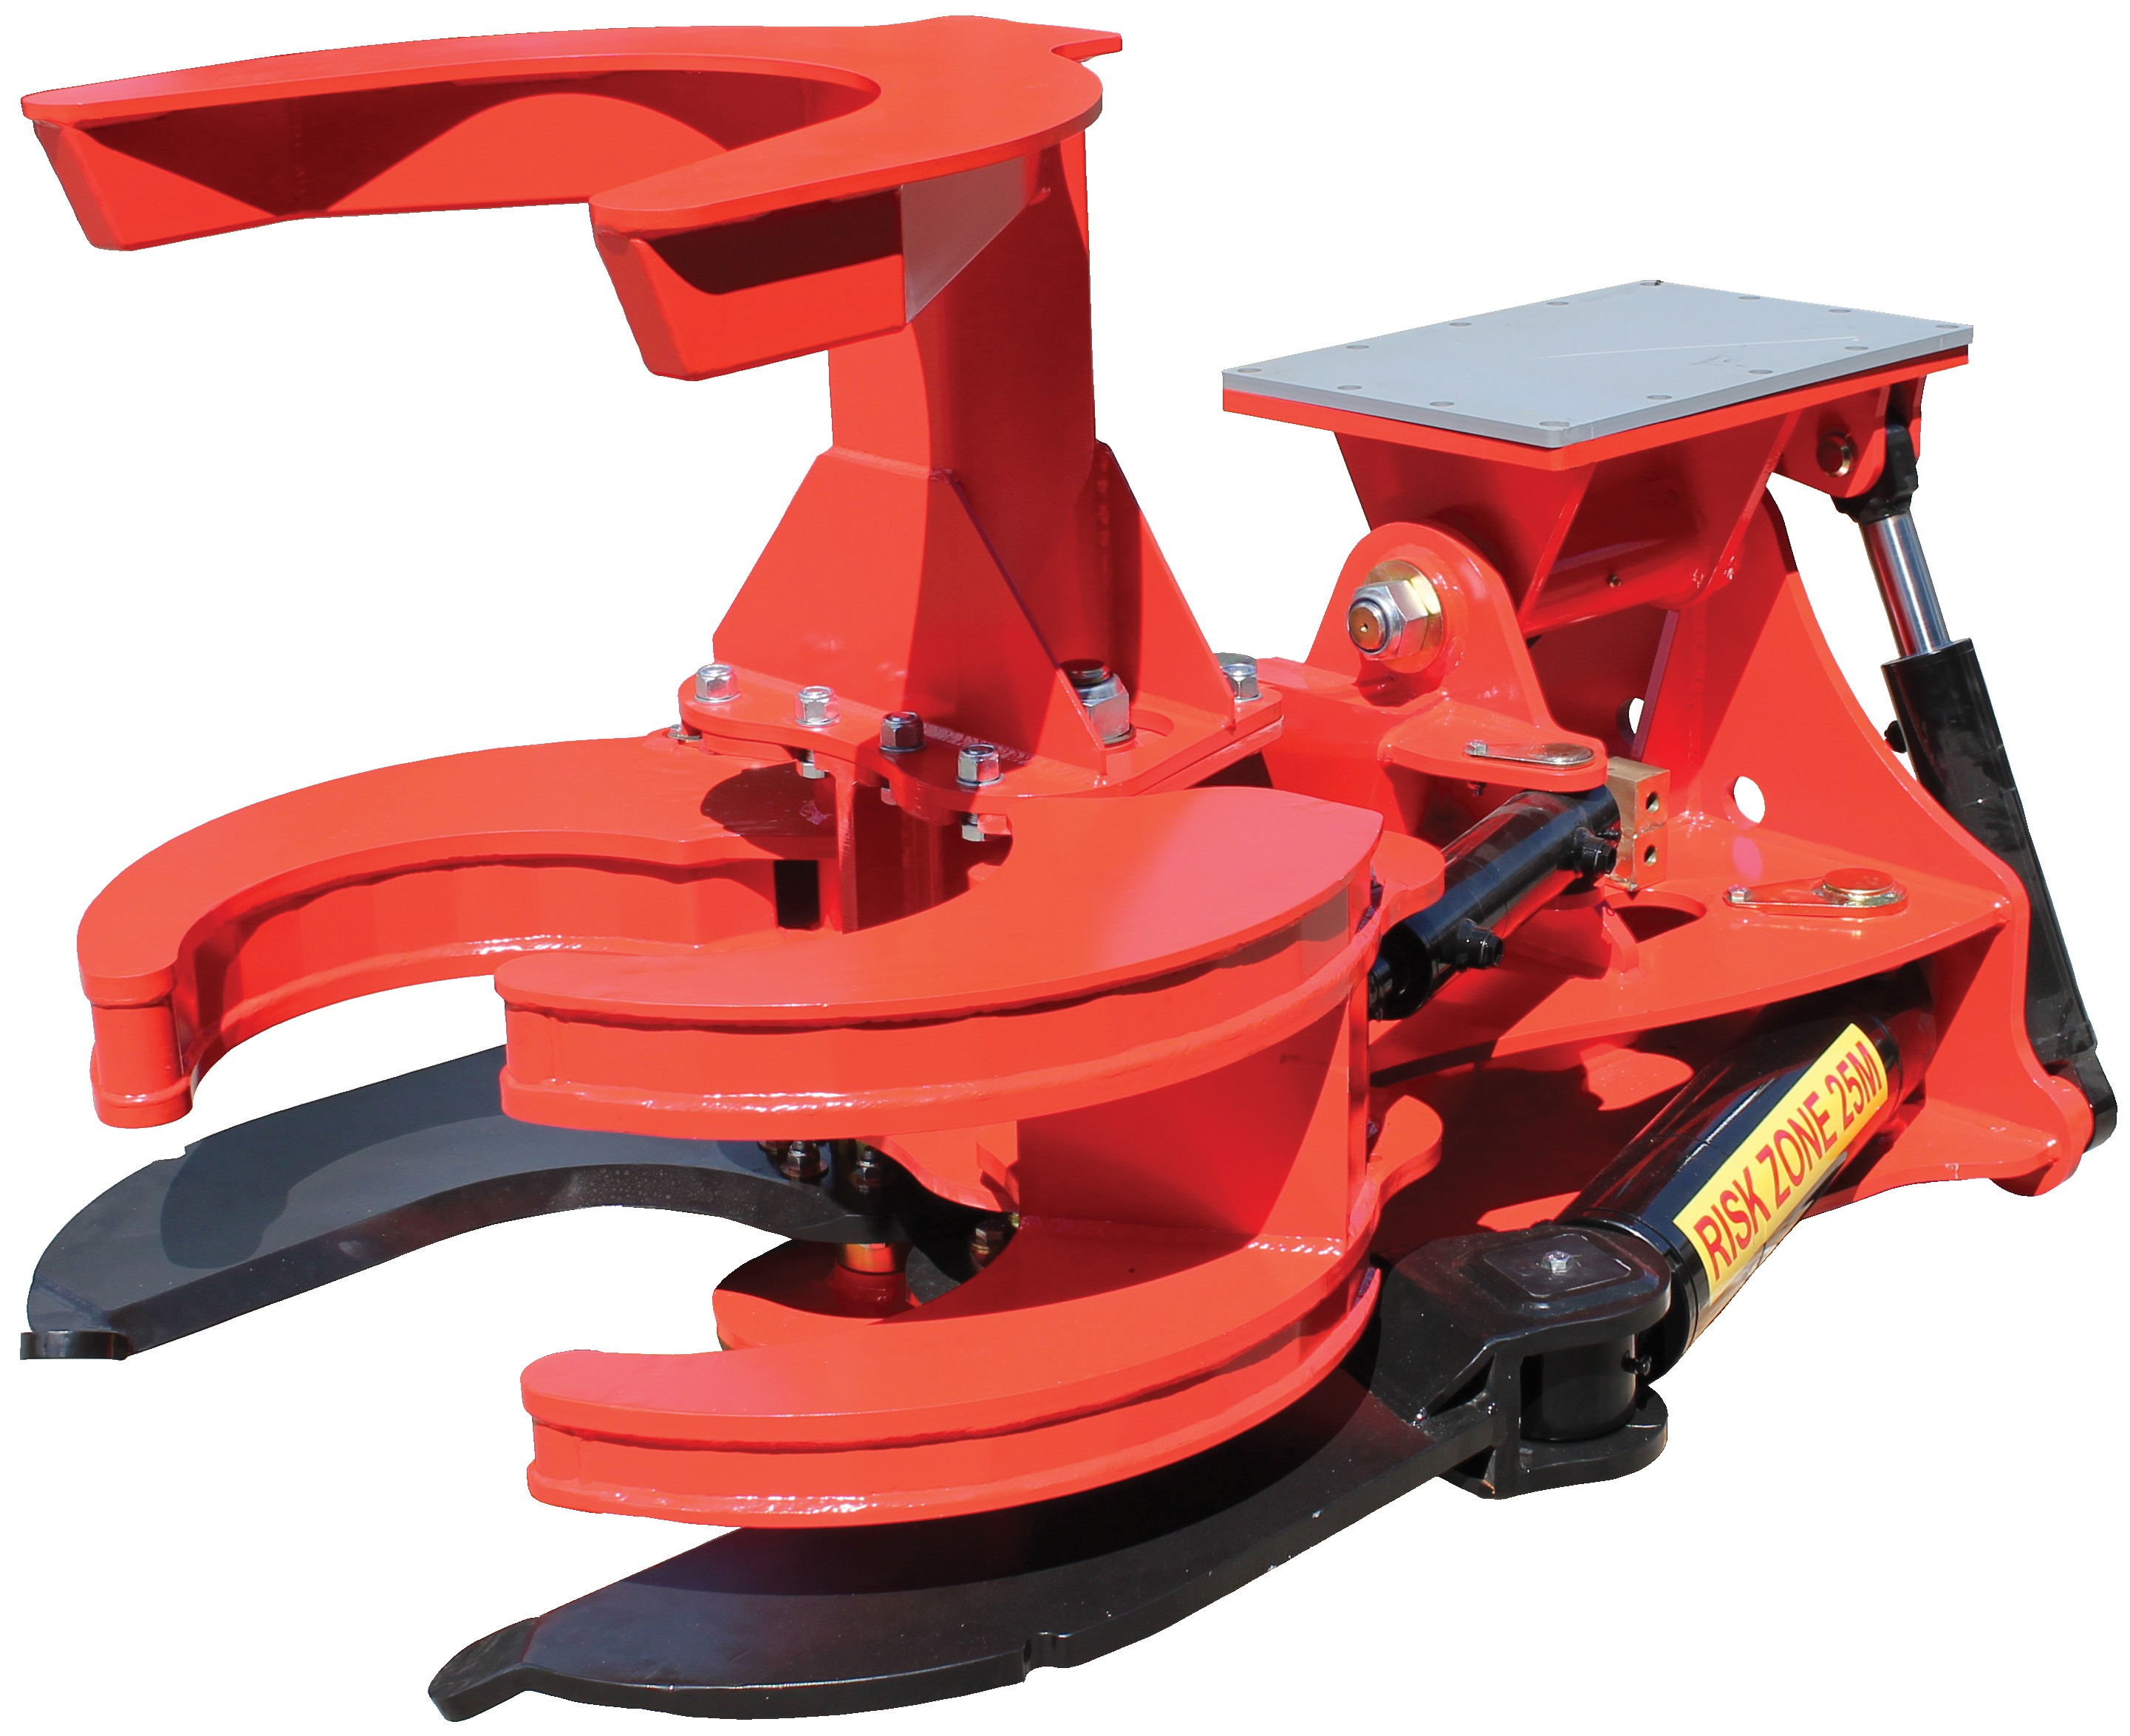 Forestry Truck For Sale Scorpion 440 | Tree Shears | tree shear | mlarge.com